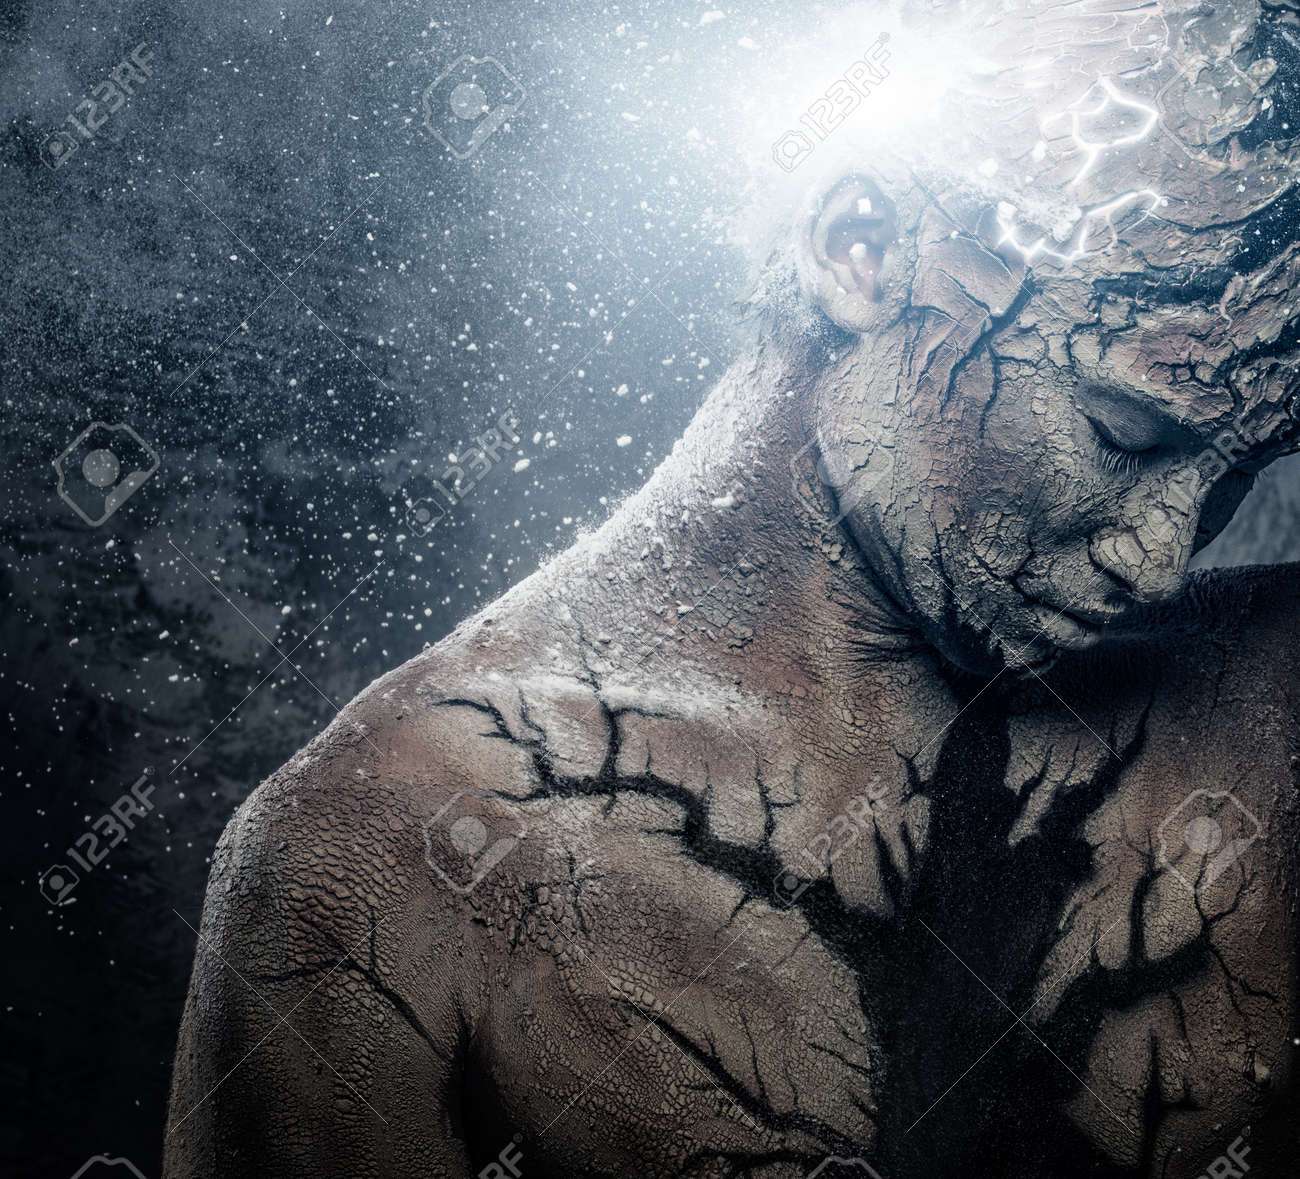 Man With Conceptual Spiritual Body Art Stock Photo Picture And Royalty Free Image Image 22782424